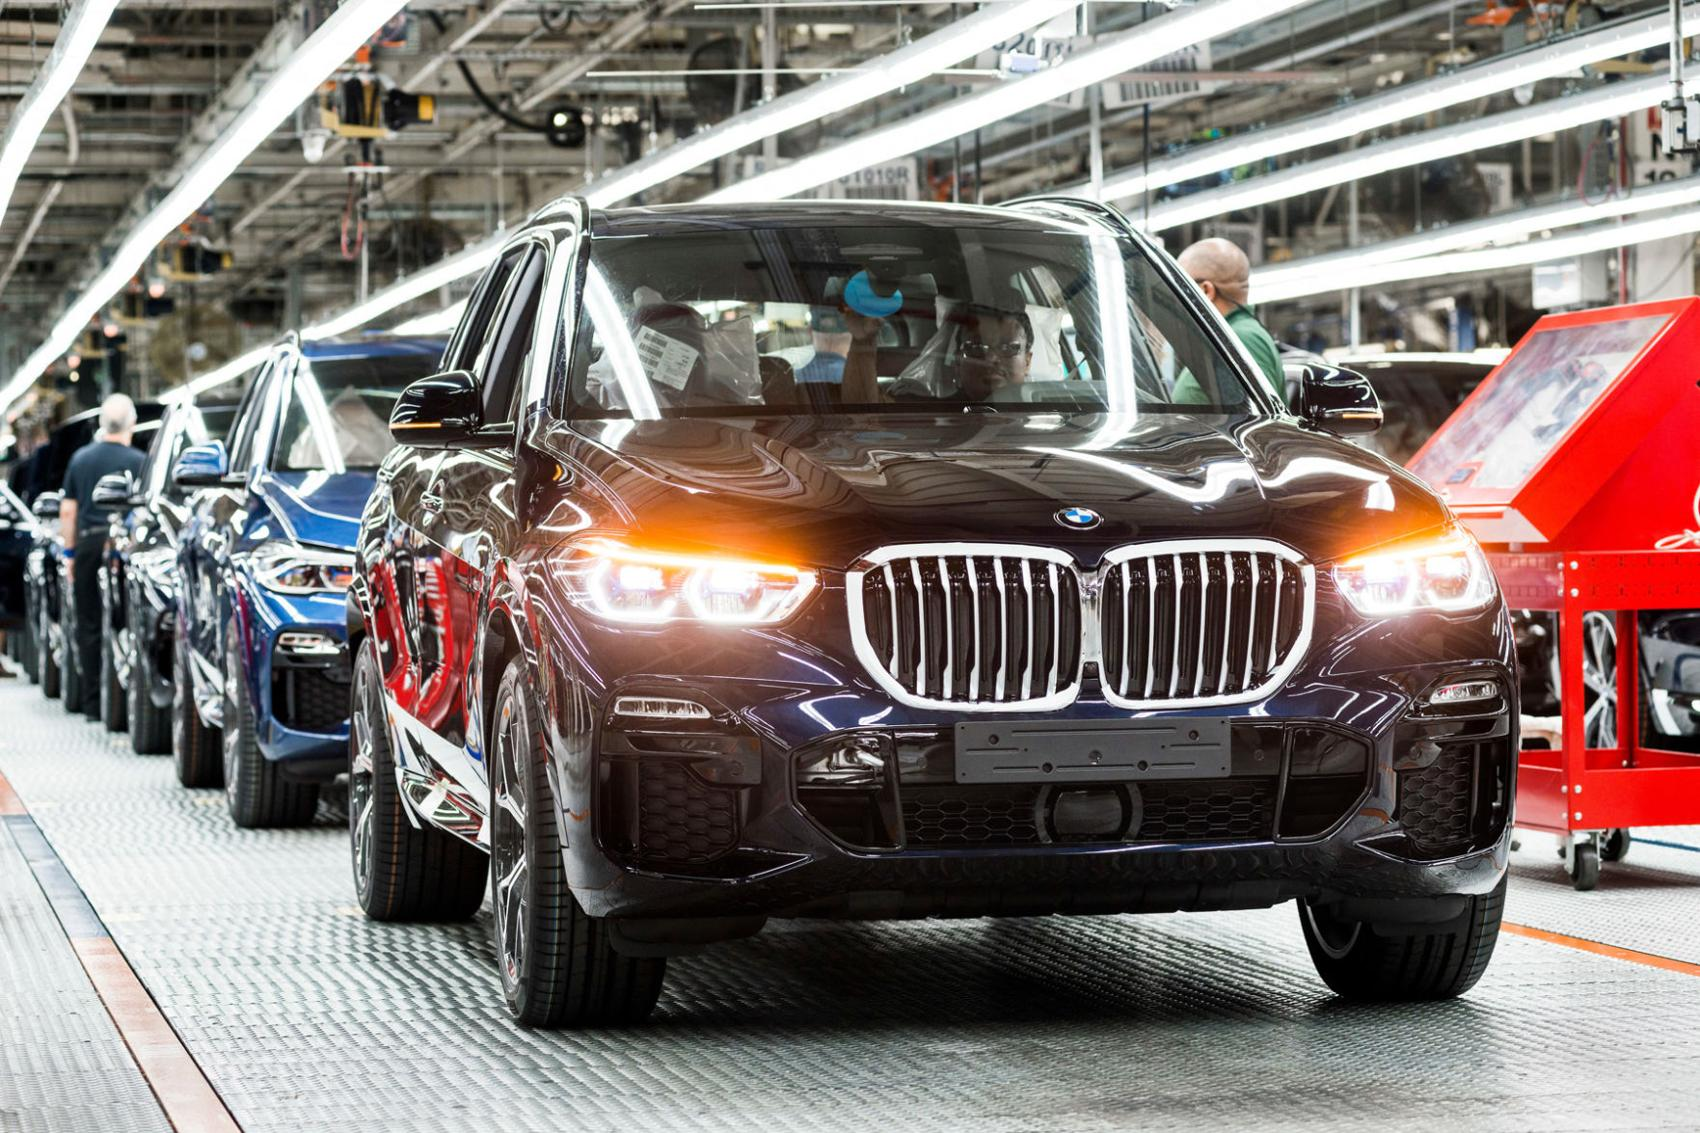 POST AND COURIER – BMW's SC plant overcomes obstacles for record production year